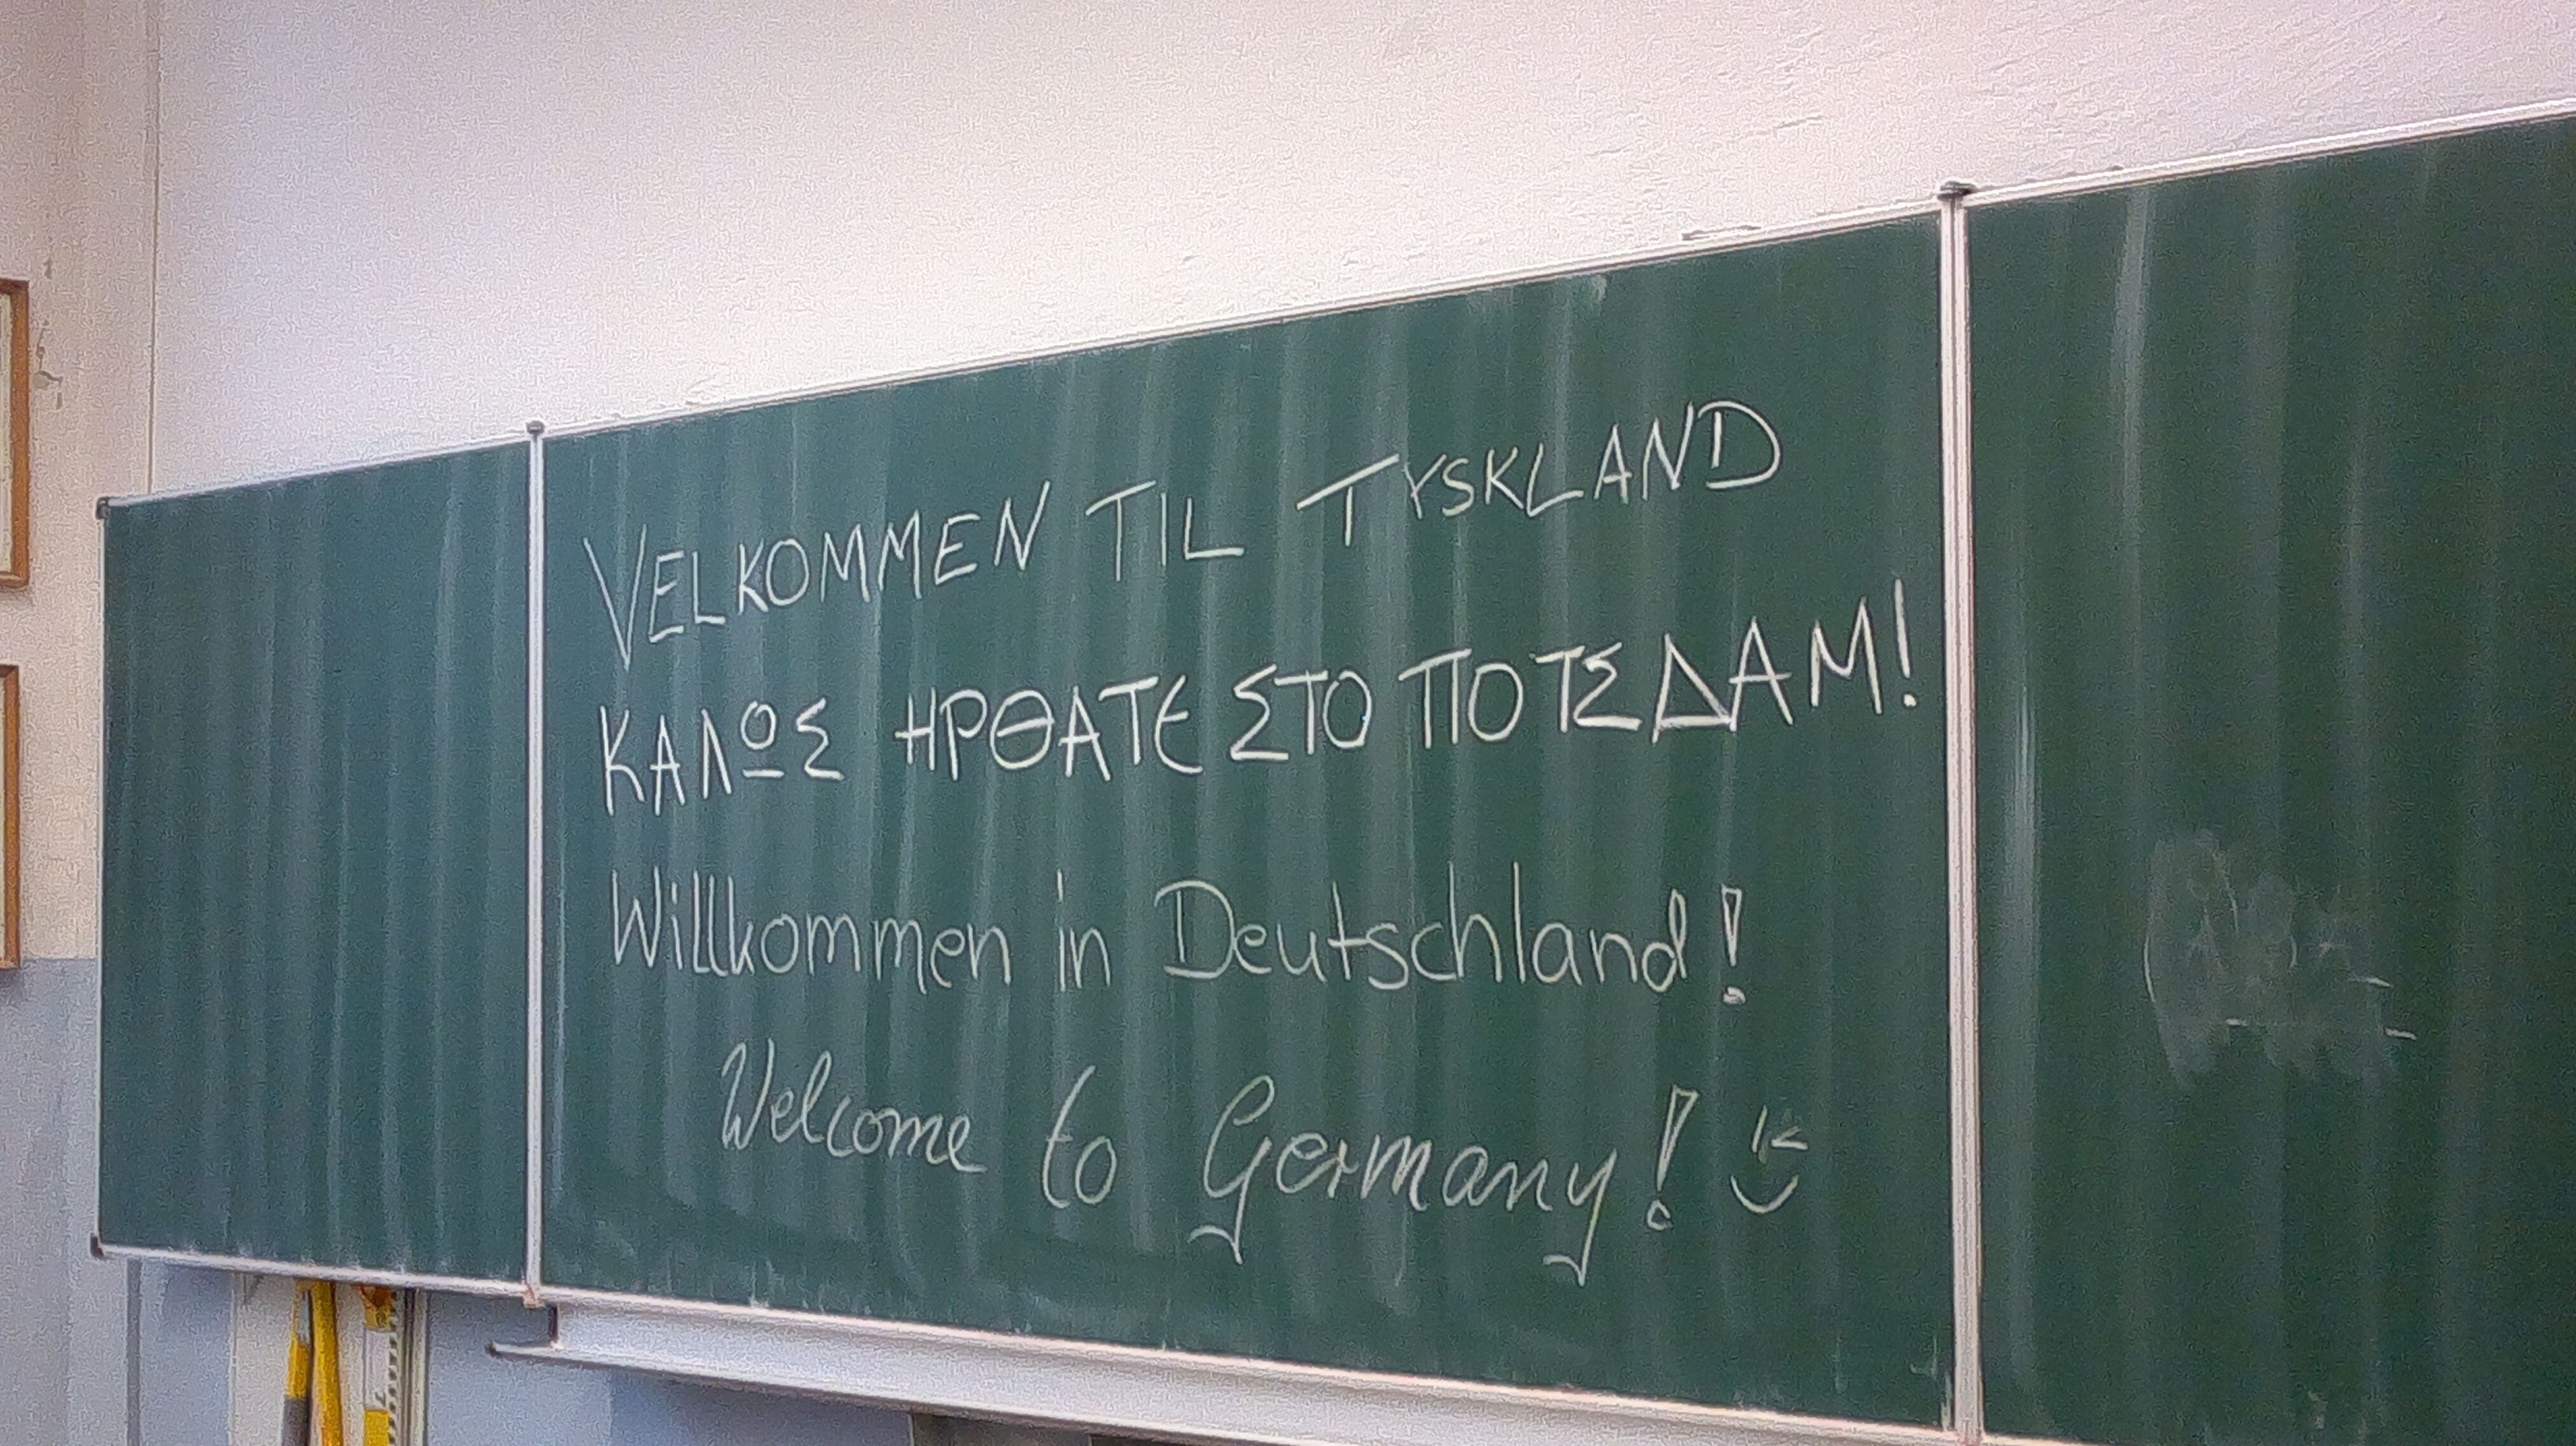 Welcome To Potsdam!